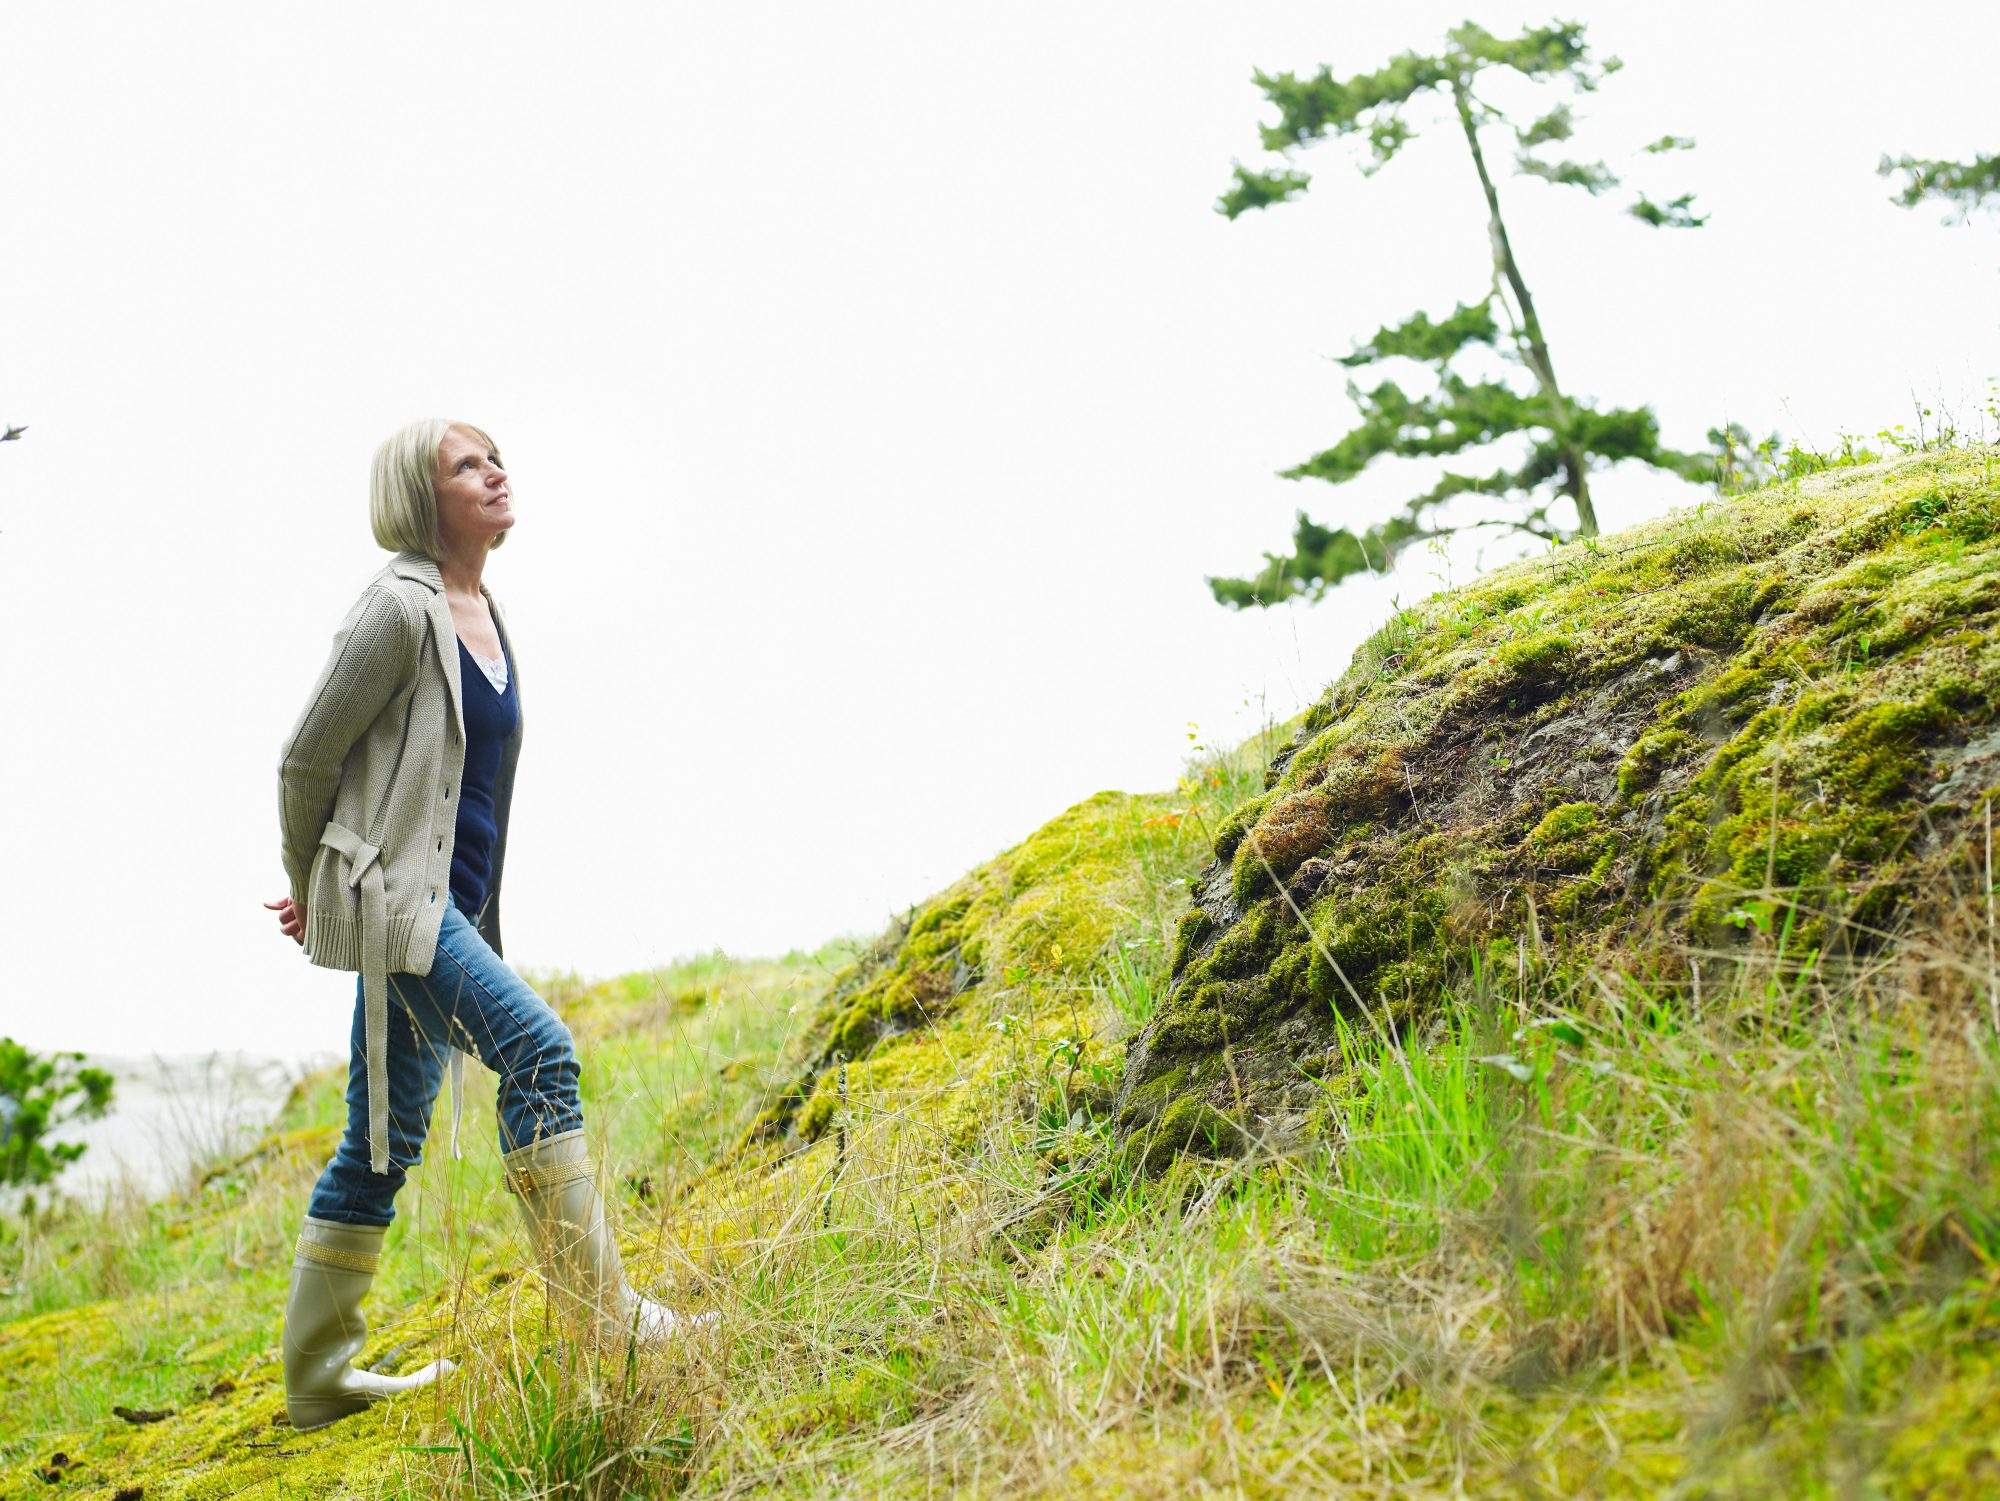 alzheimers-woman-walking-treatment